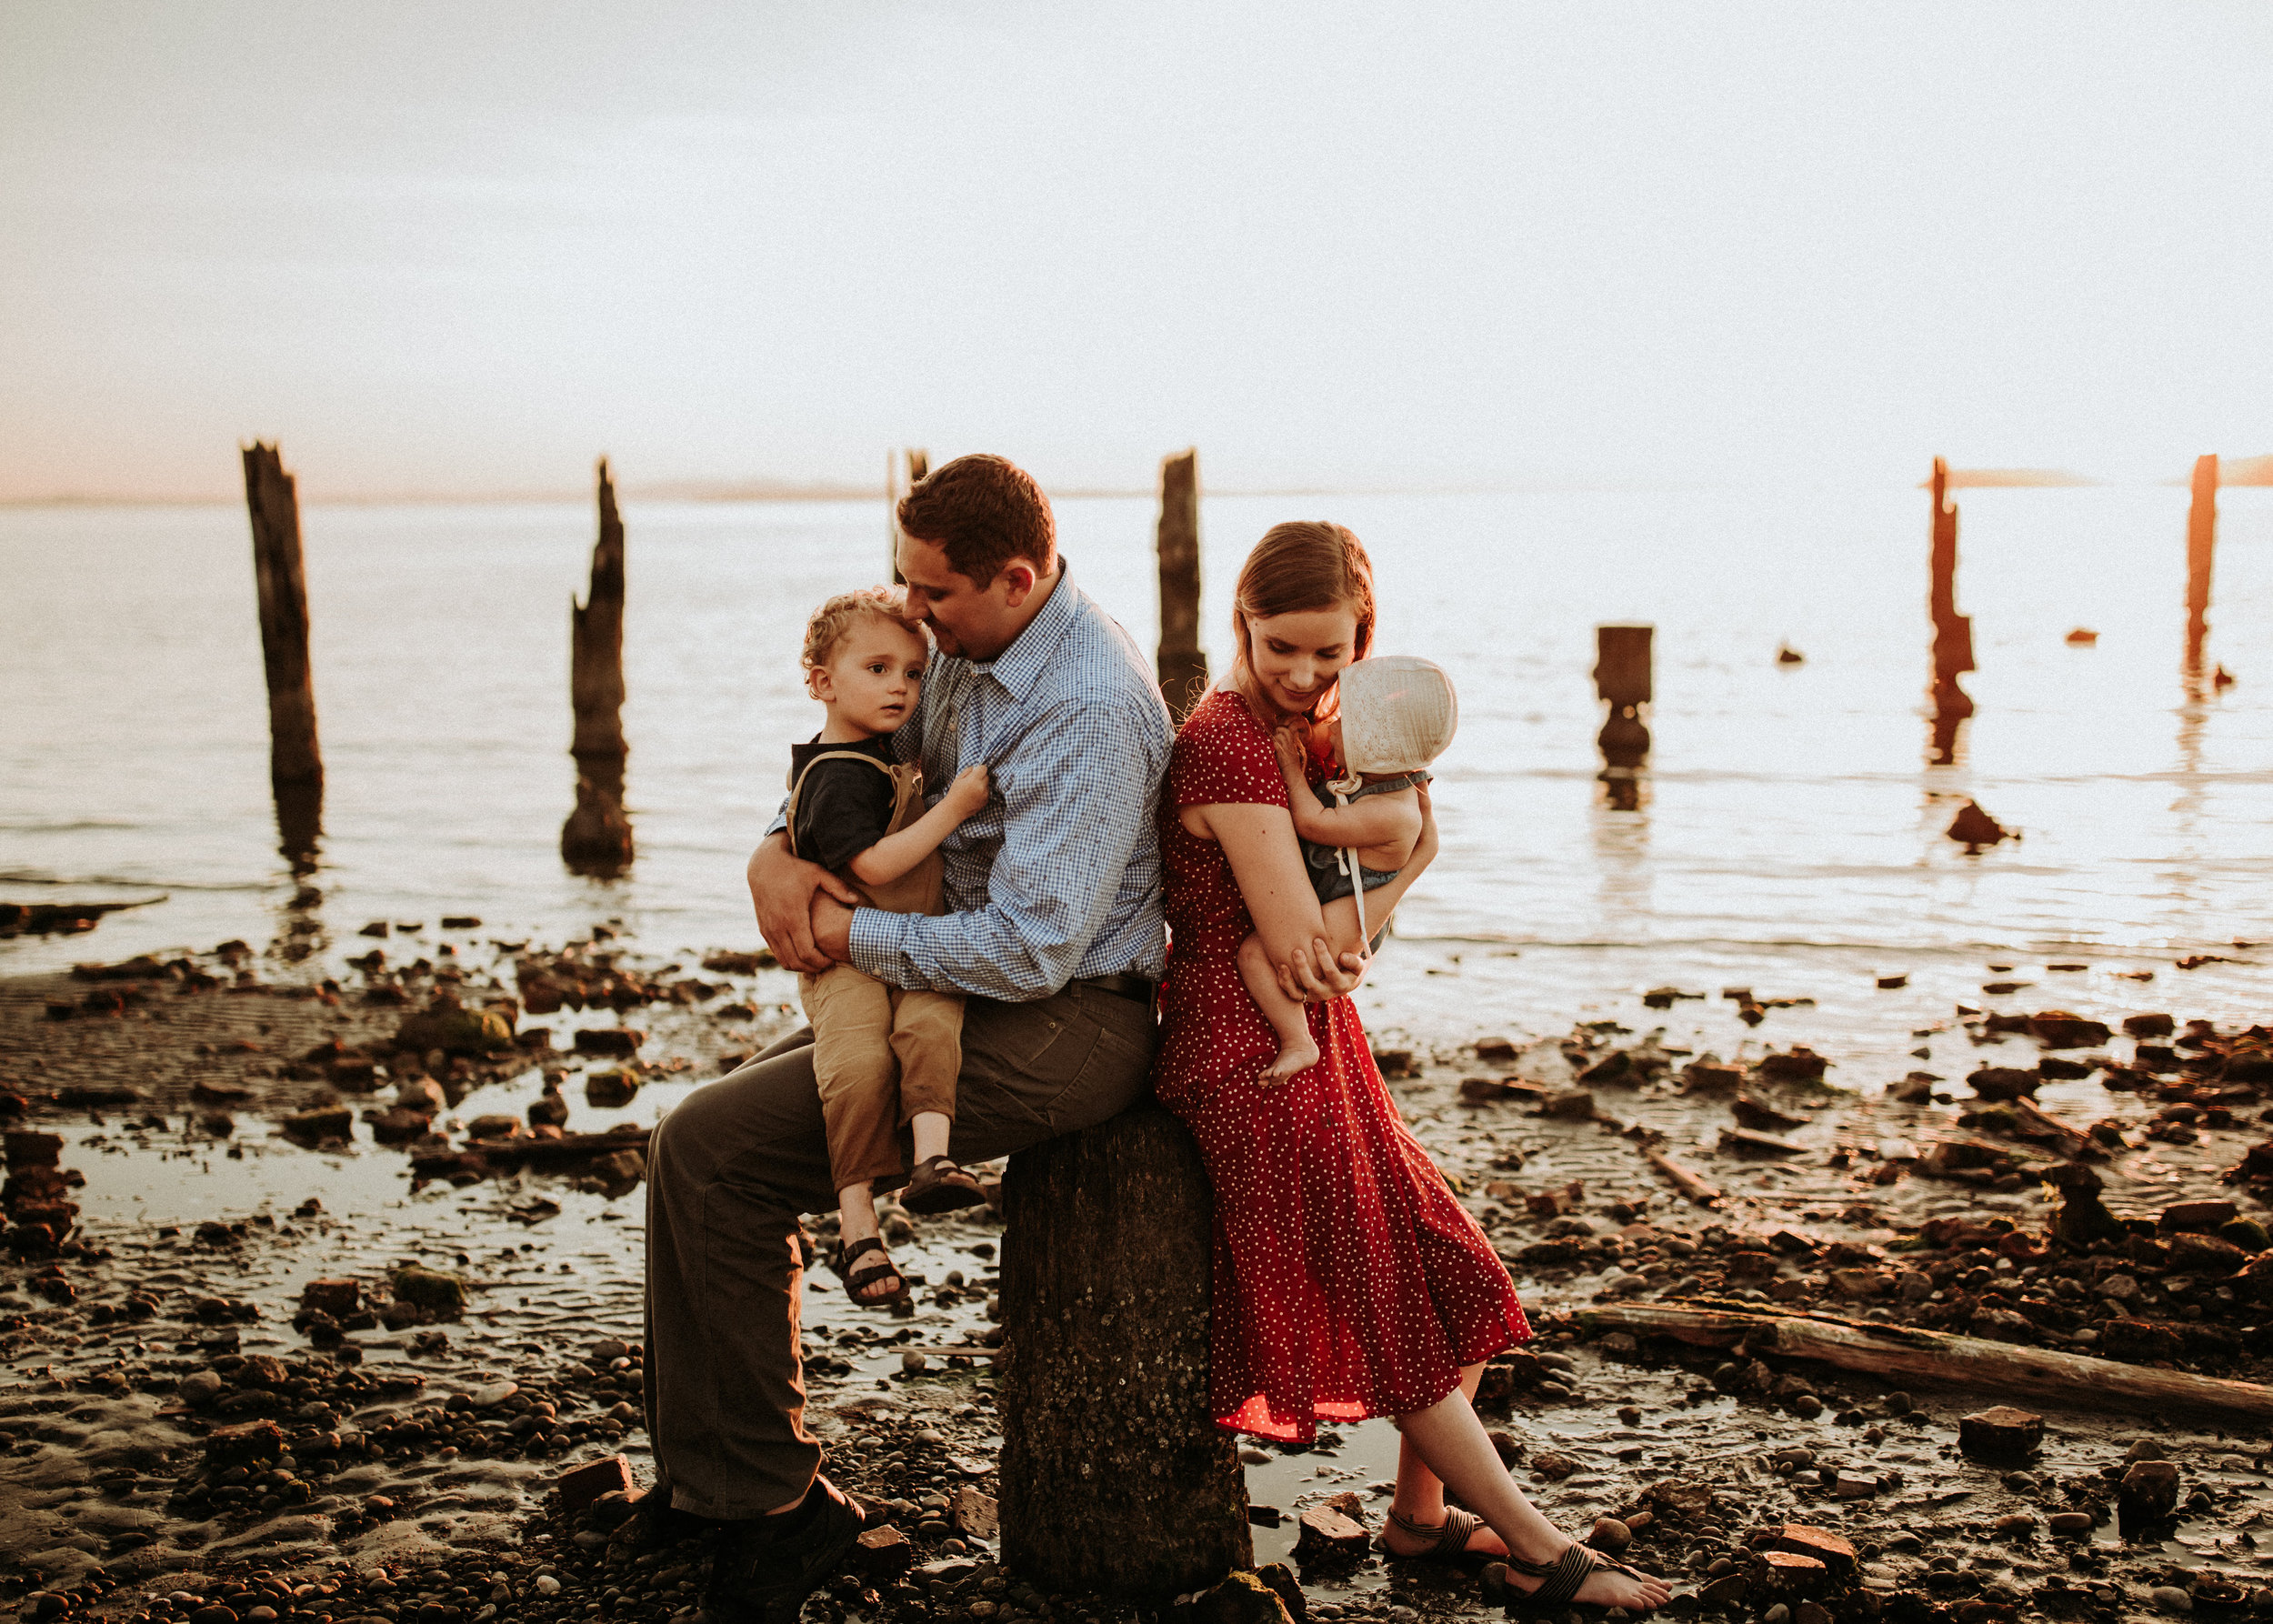 Family-Photographer-Bellingham-WA-Brianne-Bell-Photograpy-(Andrea)-82.jpg